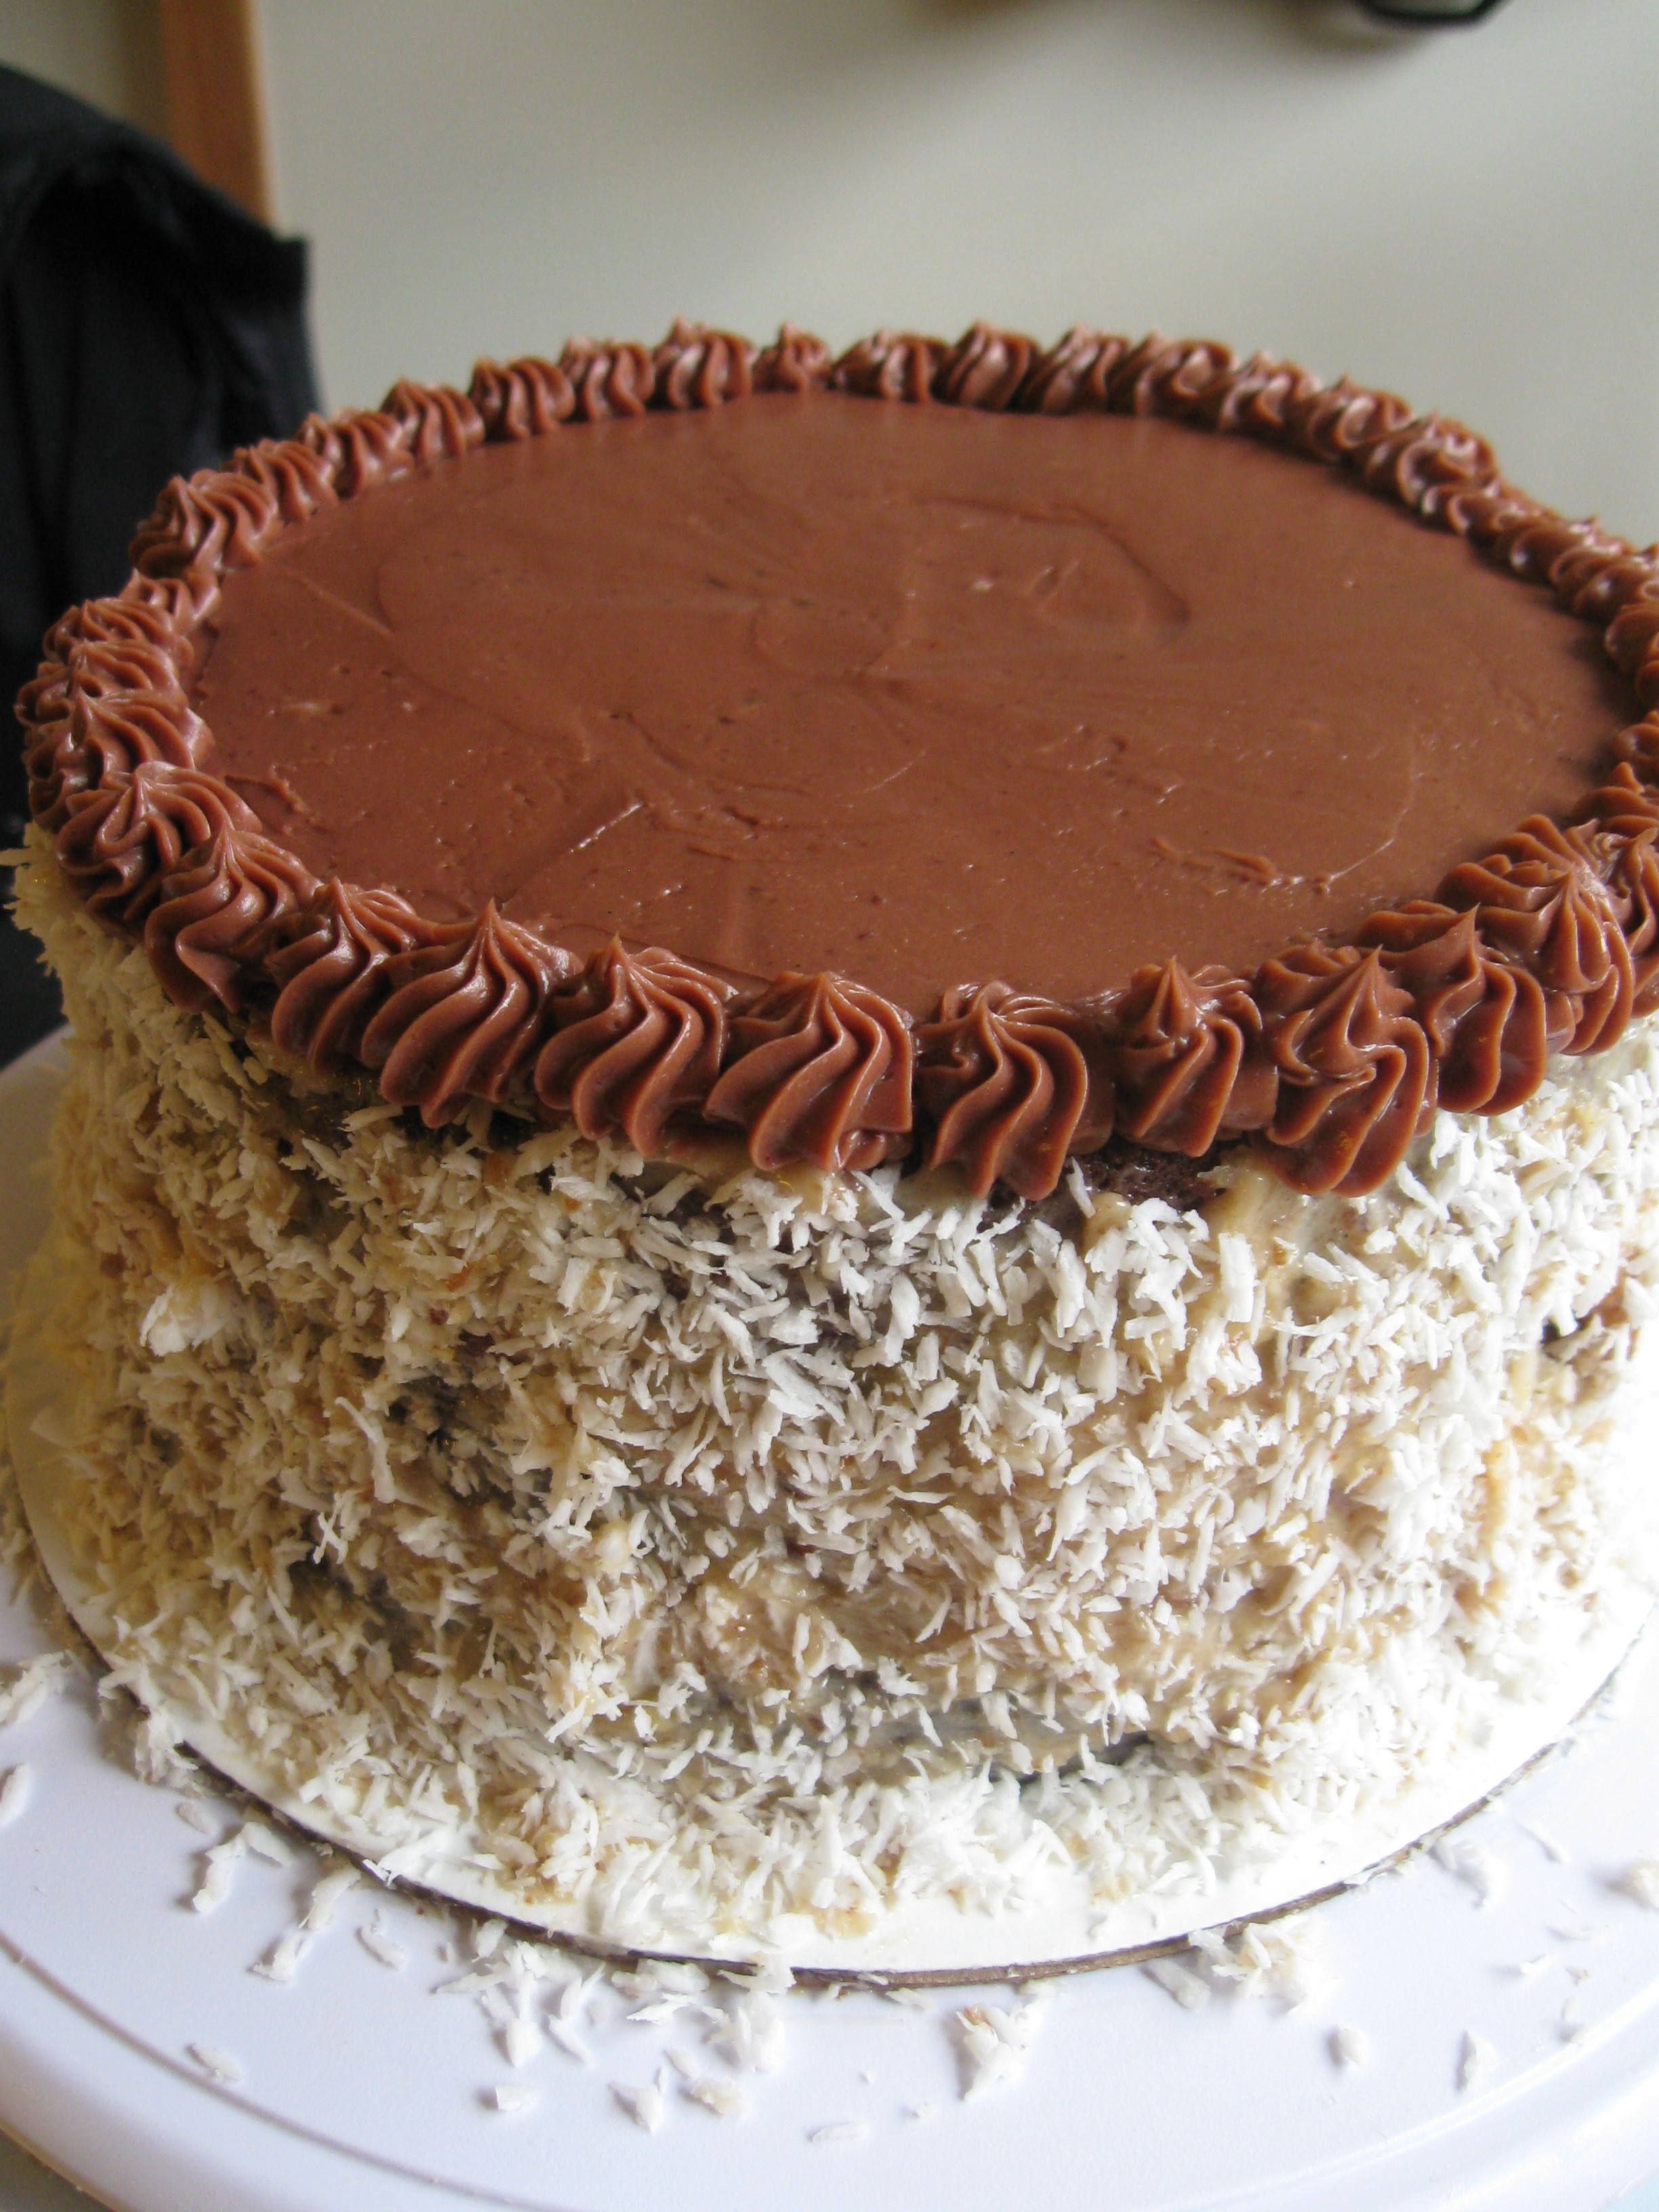 Decorated German Chocolate Cake Cakes Panader A Bread Uprising Bakery